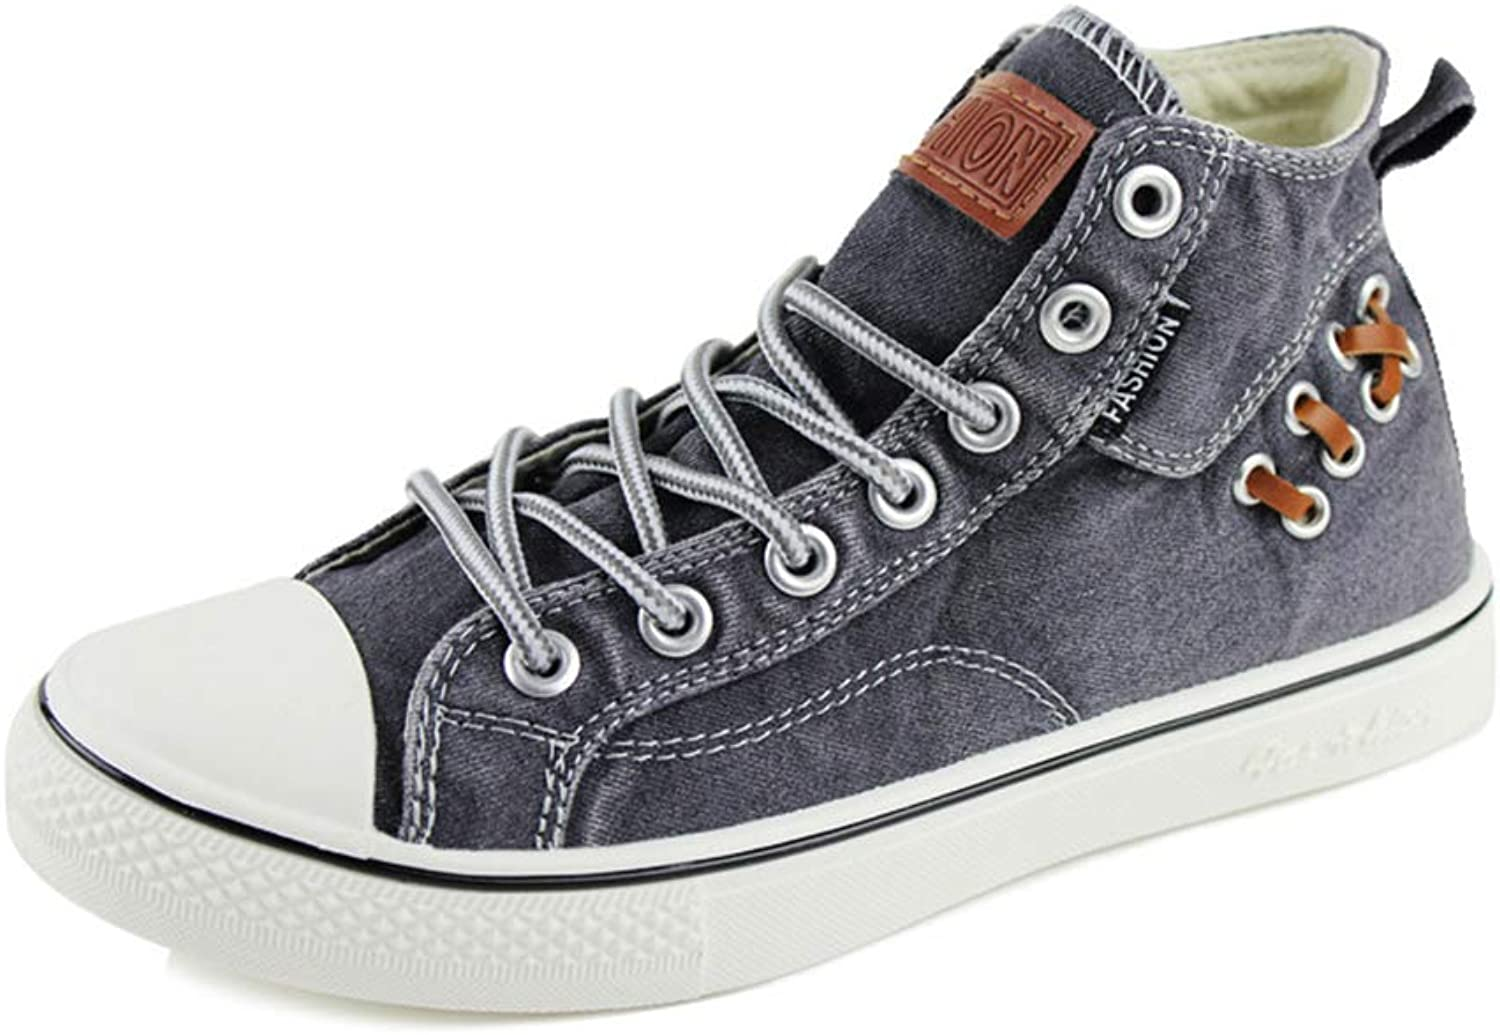 Brilliant sun Fashion Spring Summer Men Casual High Top shoes Canvas Sneakers Demin shoes